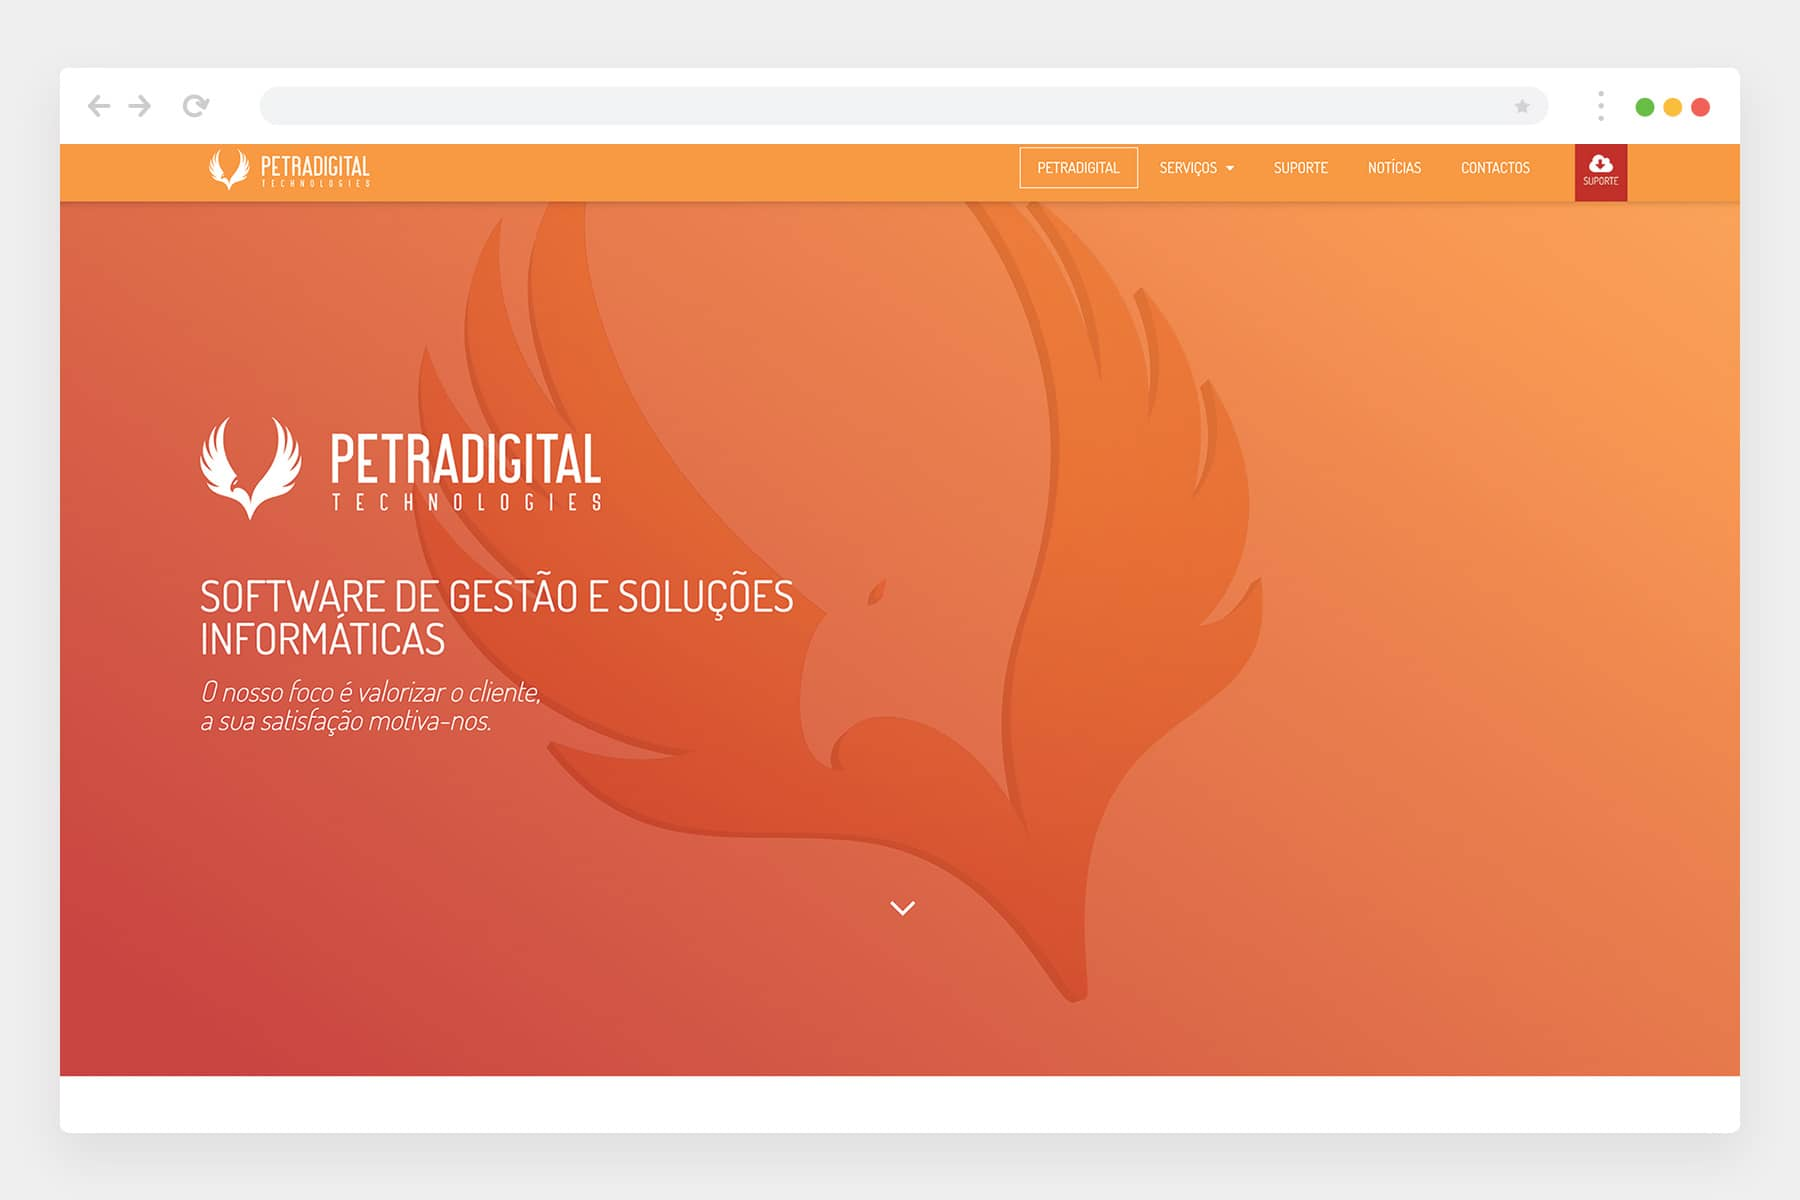 Petradigital website